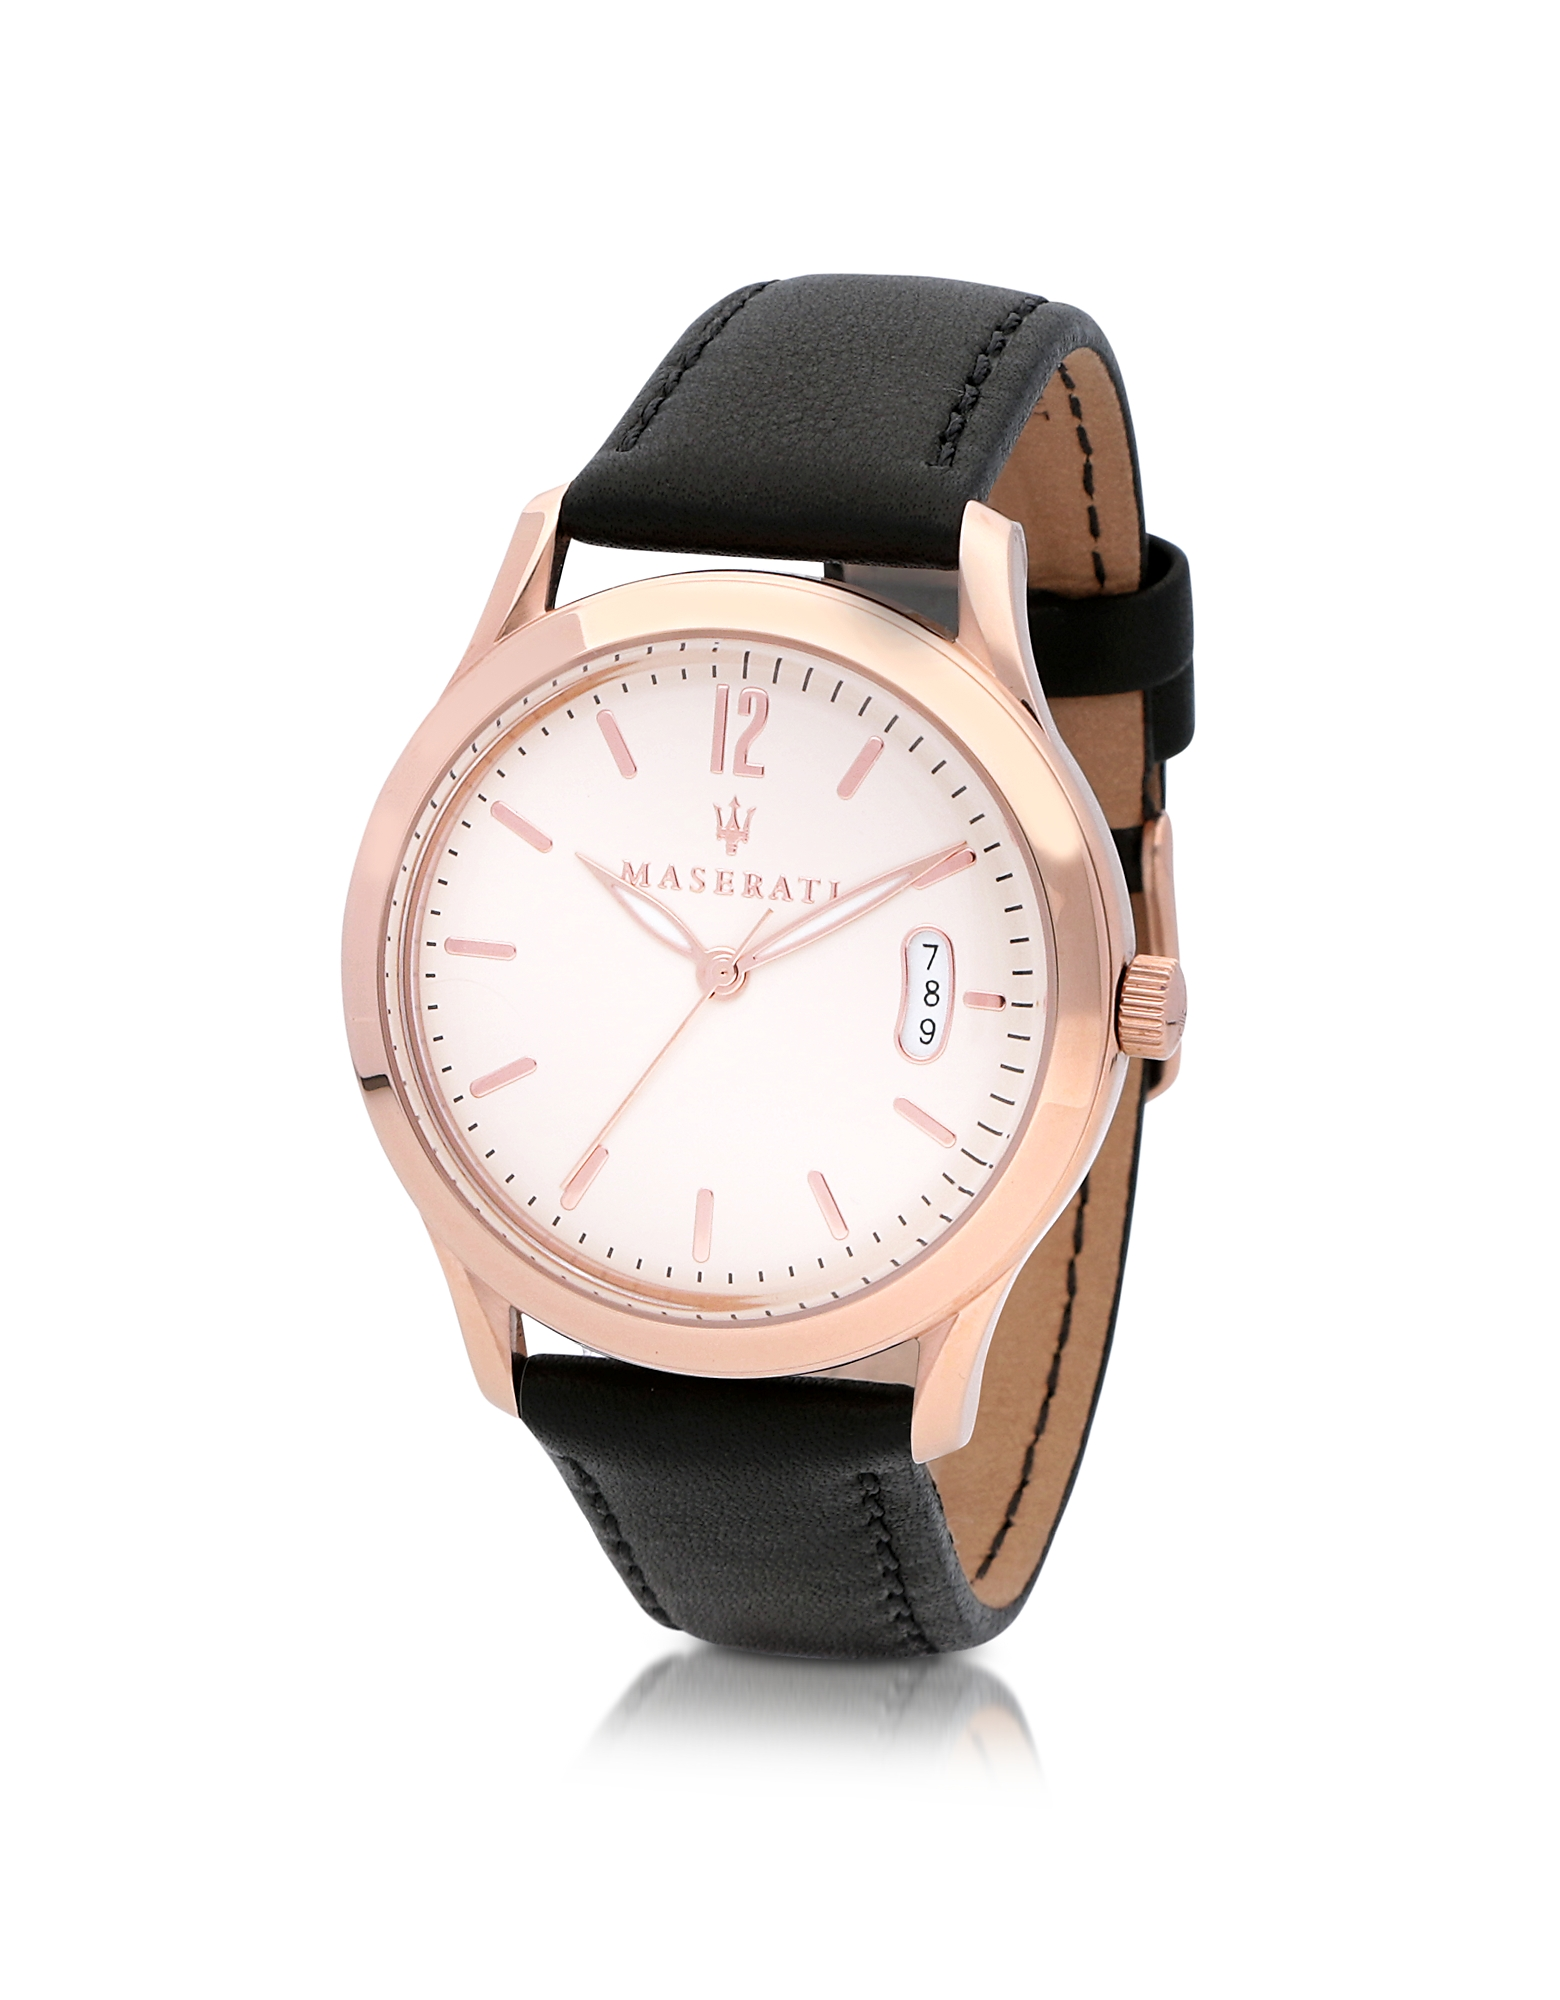 Tradizione Rose Gold Tone Case and Black Leather Strap Men's Watch